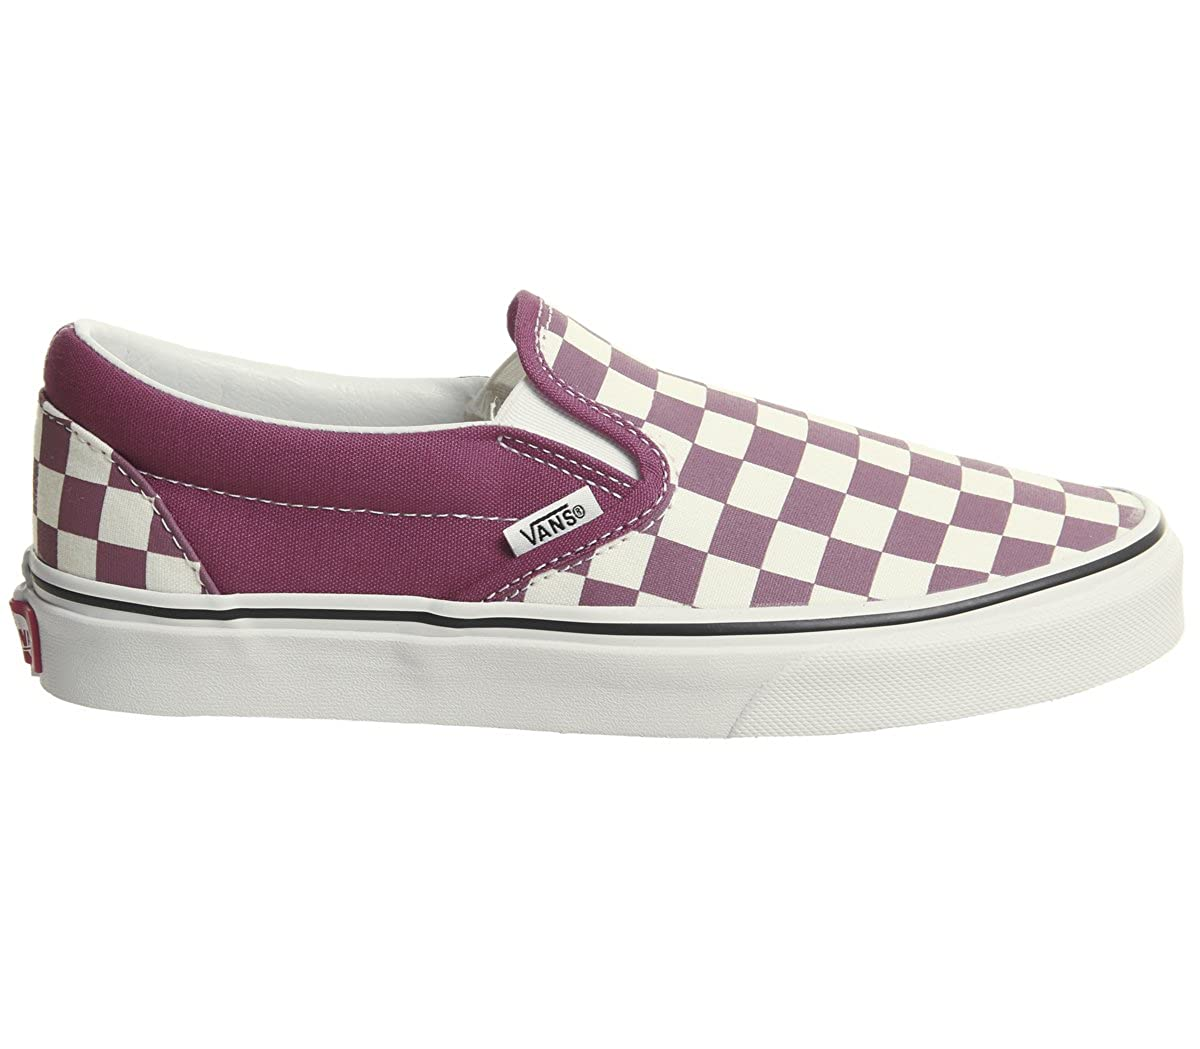 特売 [バンズ] スニーカー Women's AUTHENTIC (Pig 4.5 US Suede) VN0A38EMU5O レディース B078Y7QN1Z 4.5 6 Women/ 4.5 M US Men|Checkerboard Dry Rose White Checkerboard Dry Rose White 6 Women/ 4.5 M US Men, イヌカイマチ:5da83ff6 --- svecha37.ru